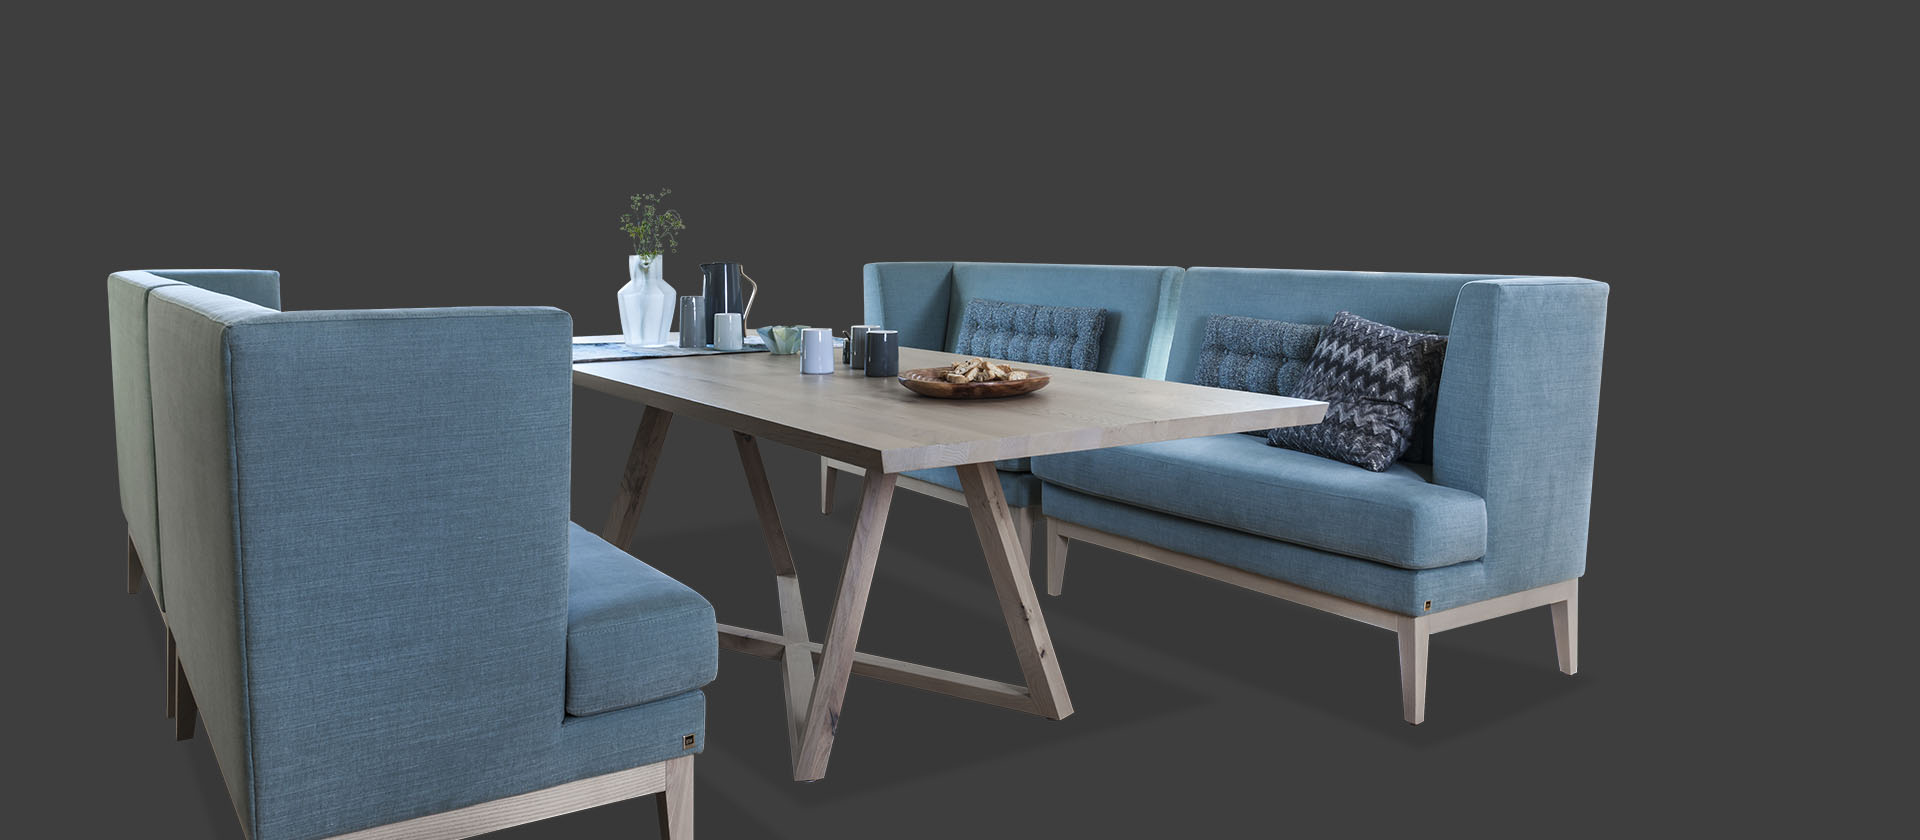 couch for dining table